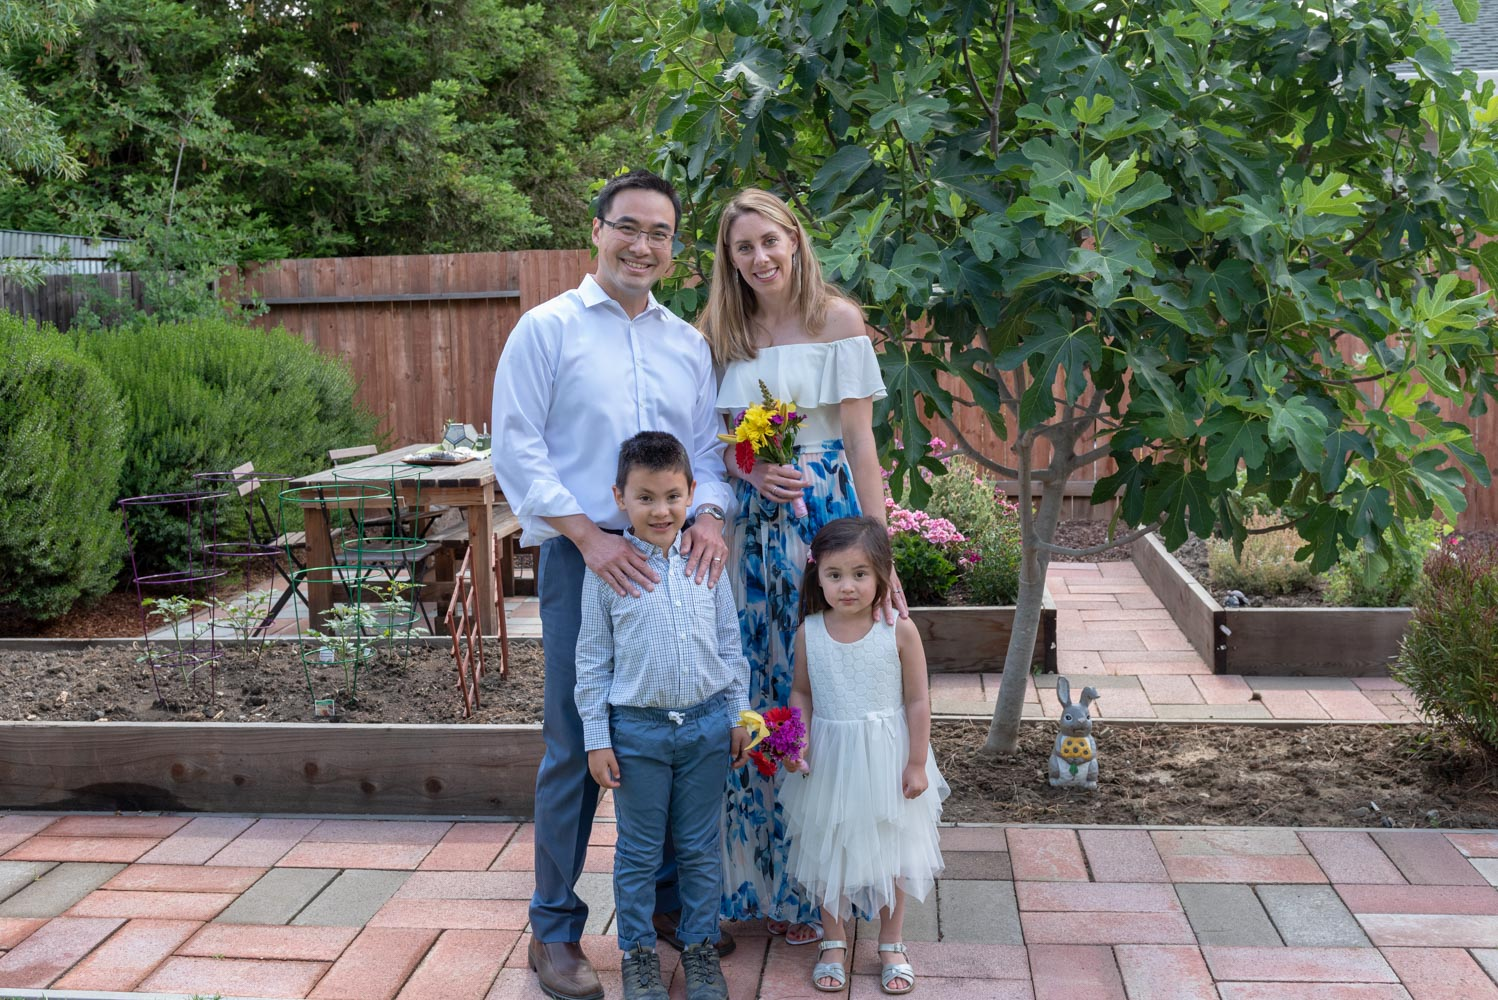 Father, mother and two children standing on patio near garden